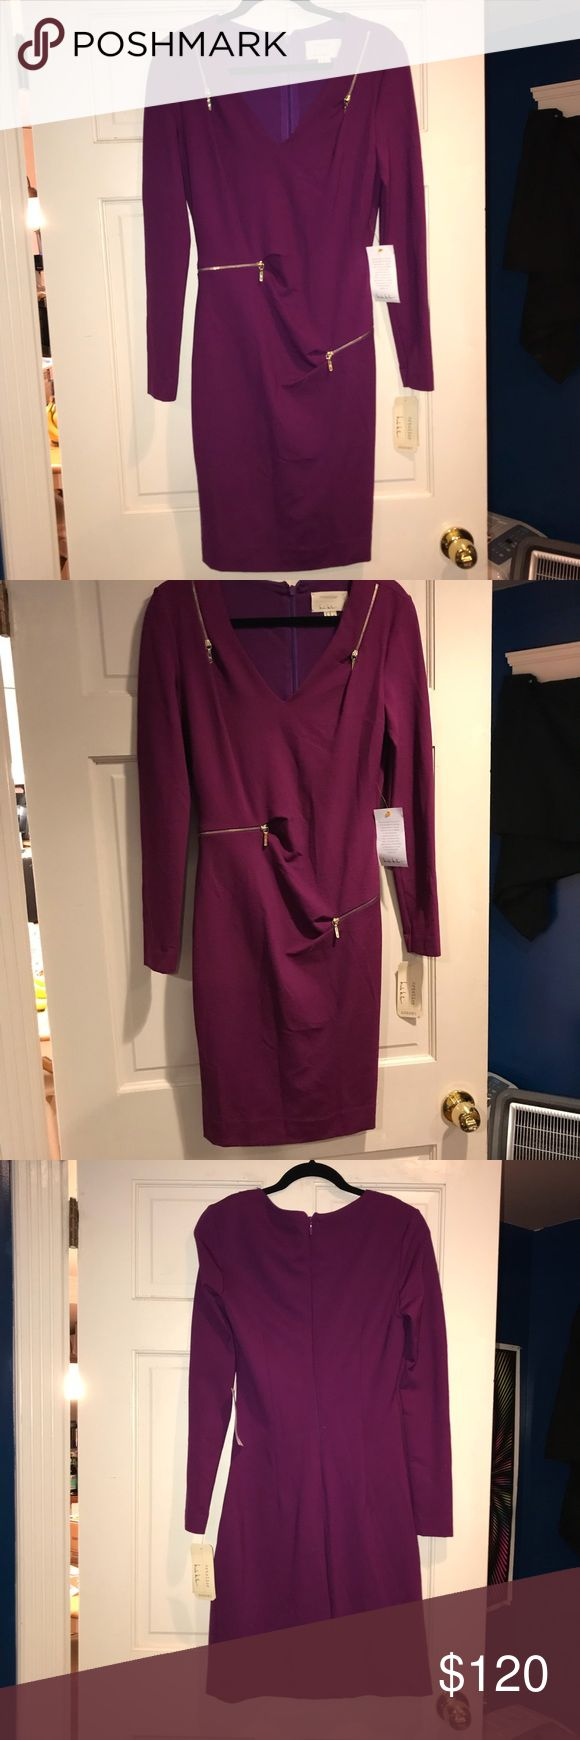 Nicole Miller Dress Artelier Nicole Miller purple v neck zipper dress brand new super cute dress it is stretchy it can also be a size 8 Nicole Miller Dresses Long Sleeve